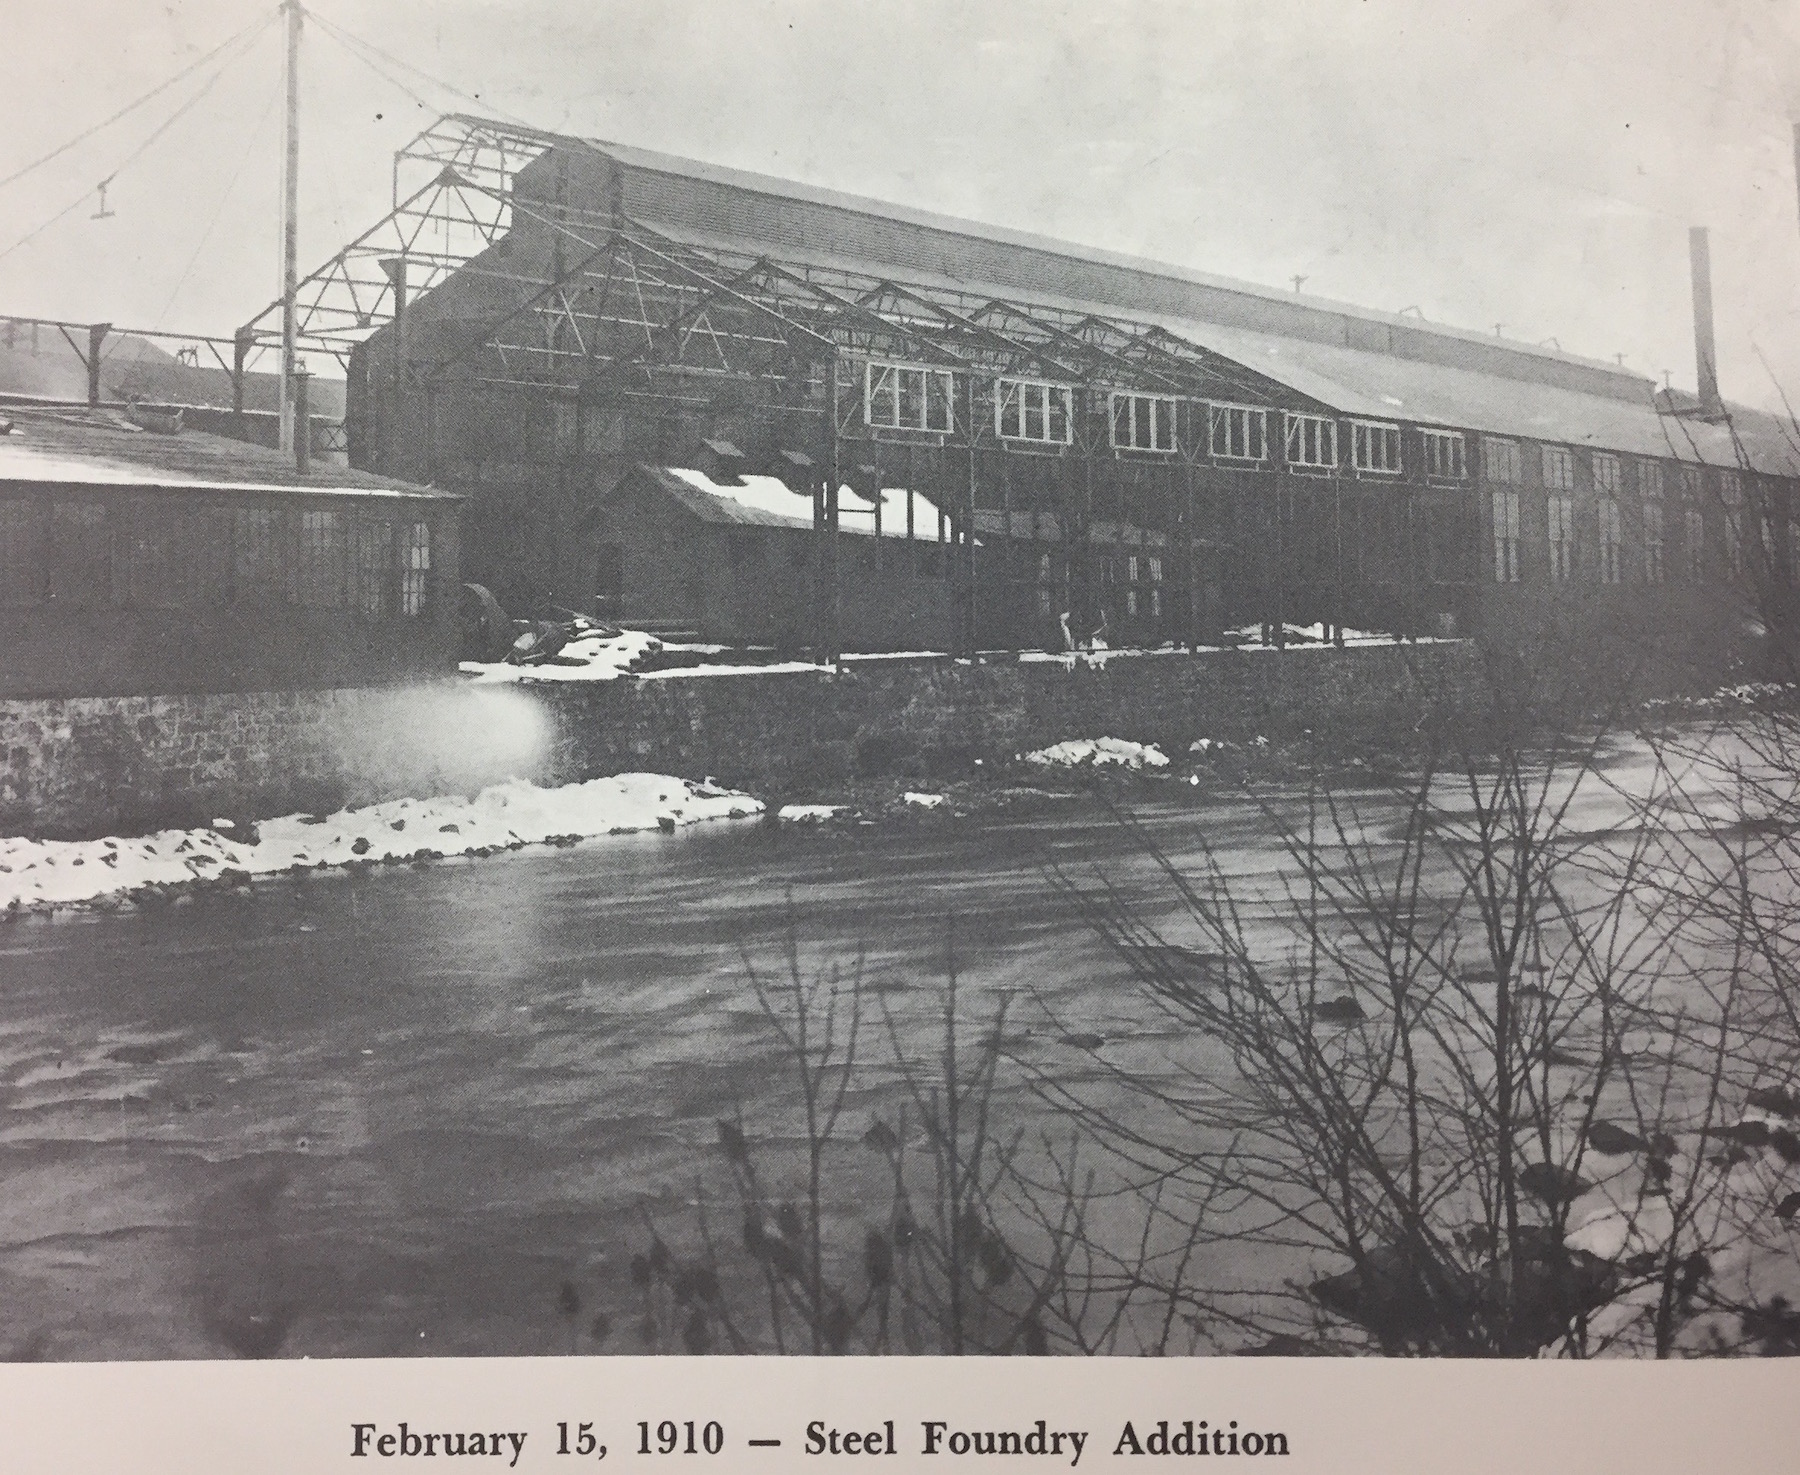 1910 steel foundry addition